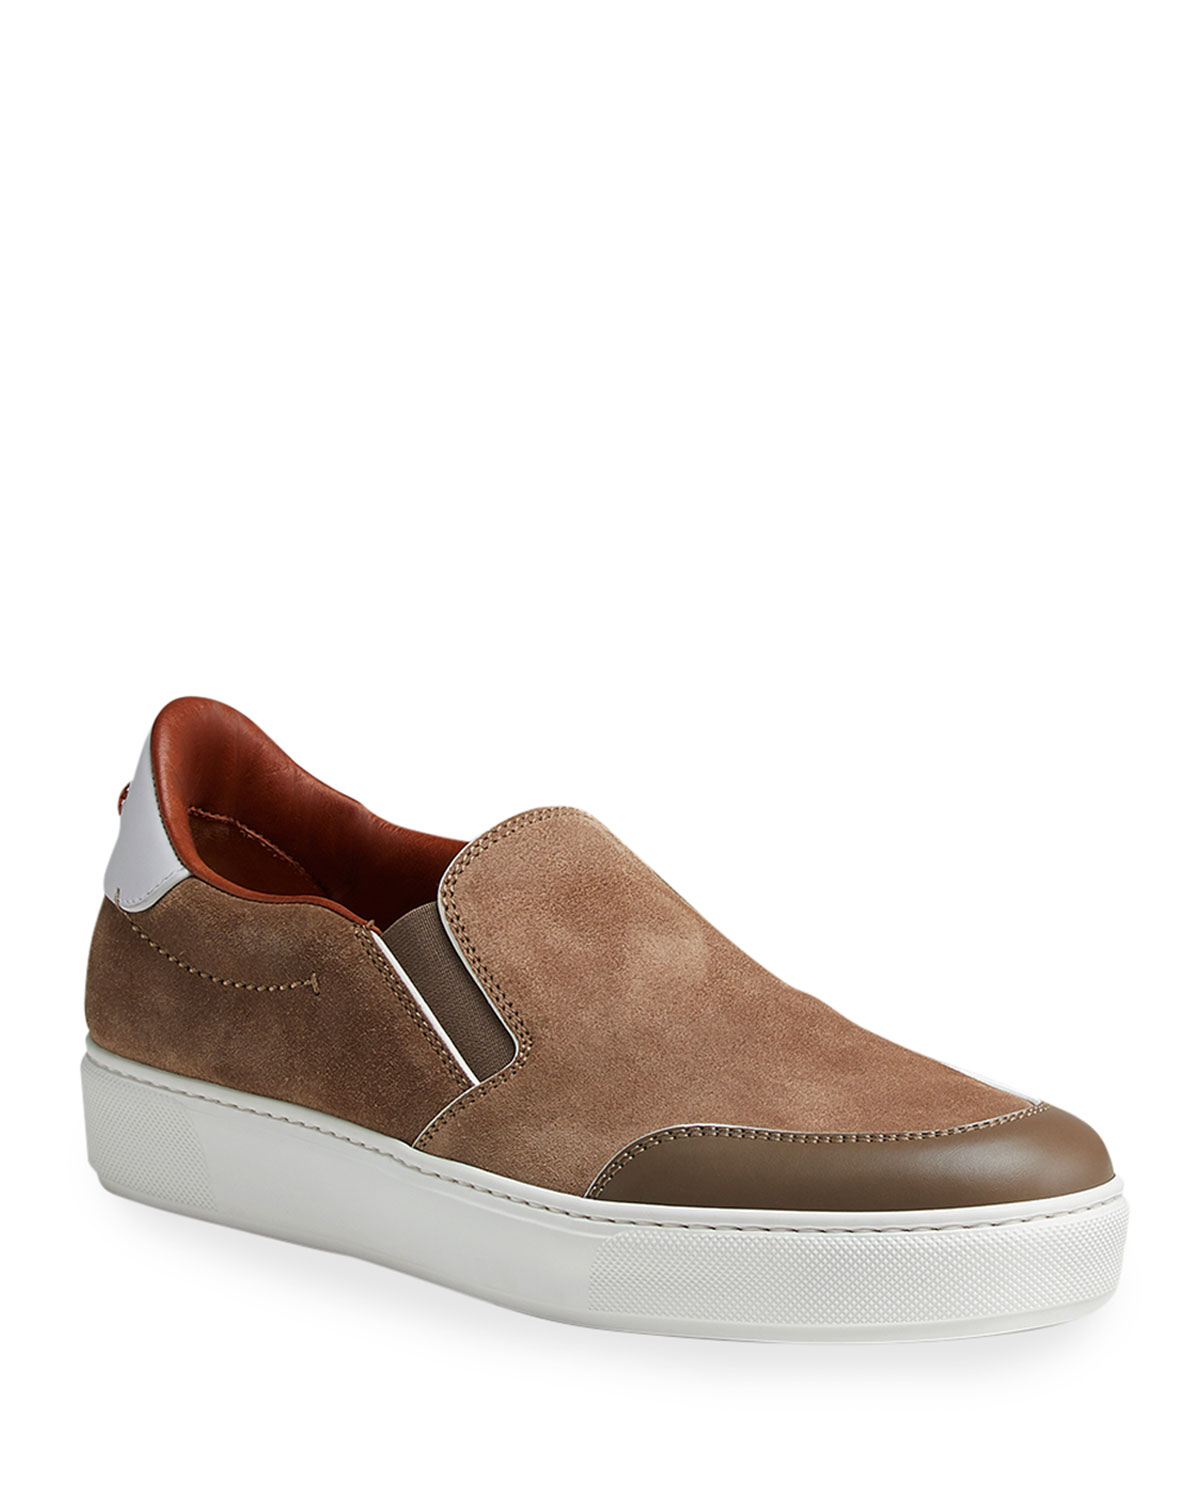 Men's Stitched Suede & Leather Slip-Ons